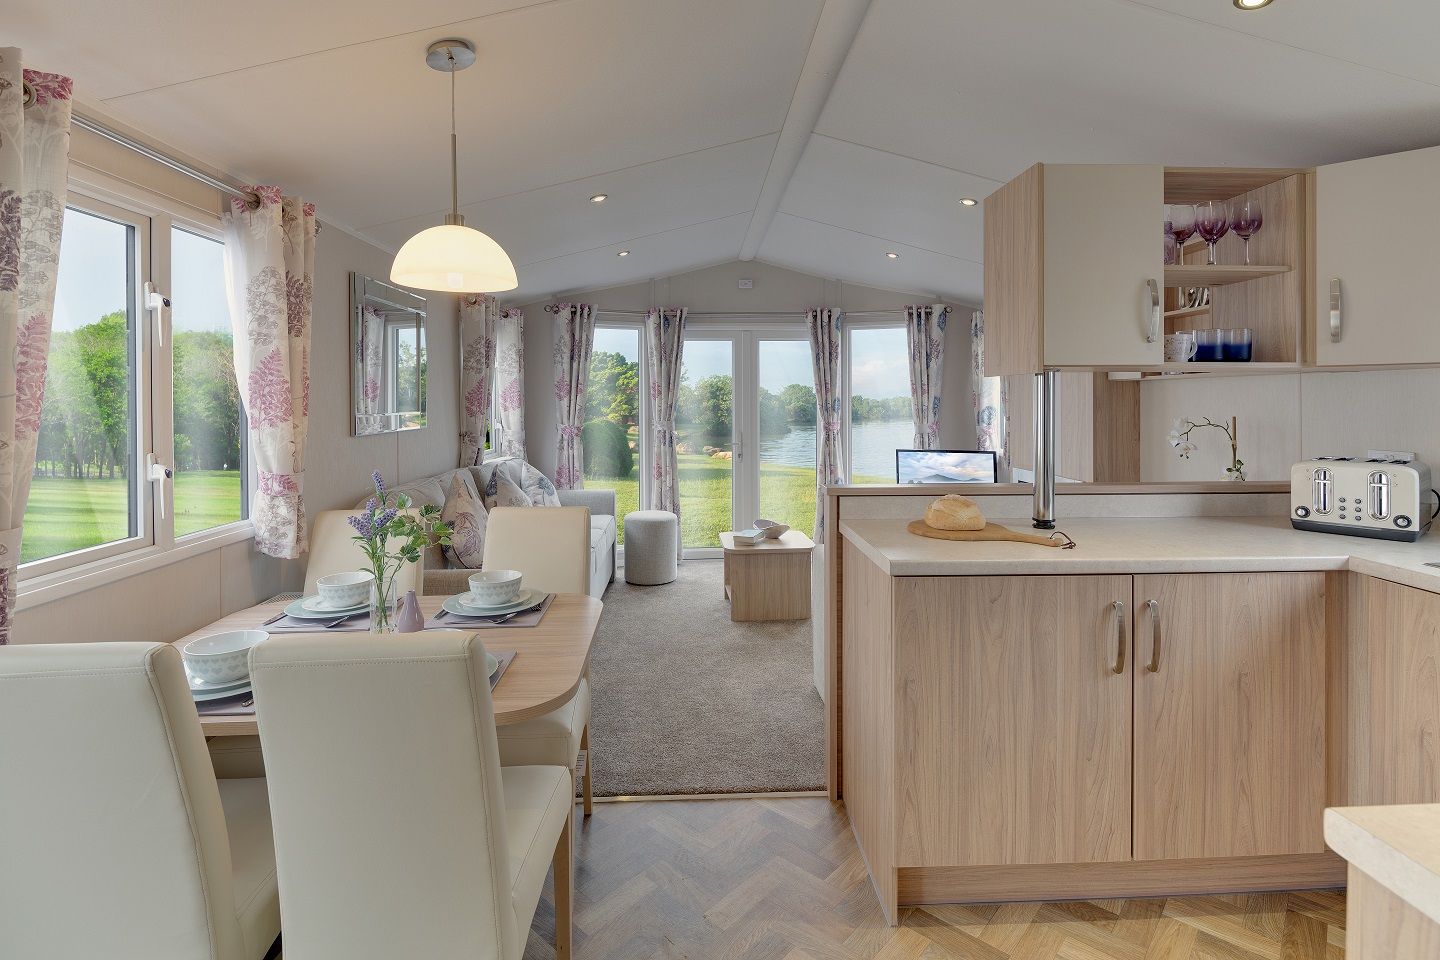 Willerby Brockenhurst: New Static Caravans and Holiday Homes for Sale, Clifton, Morpeth Large Image 1